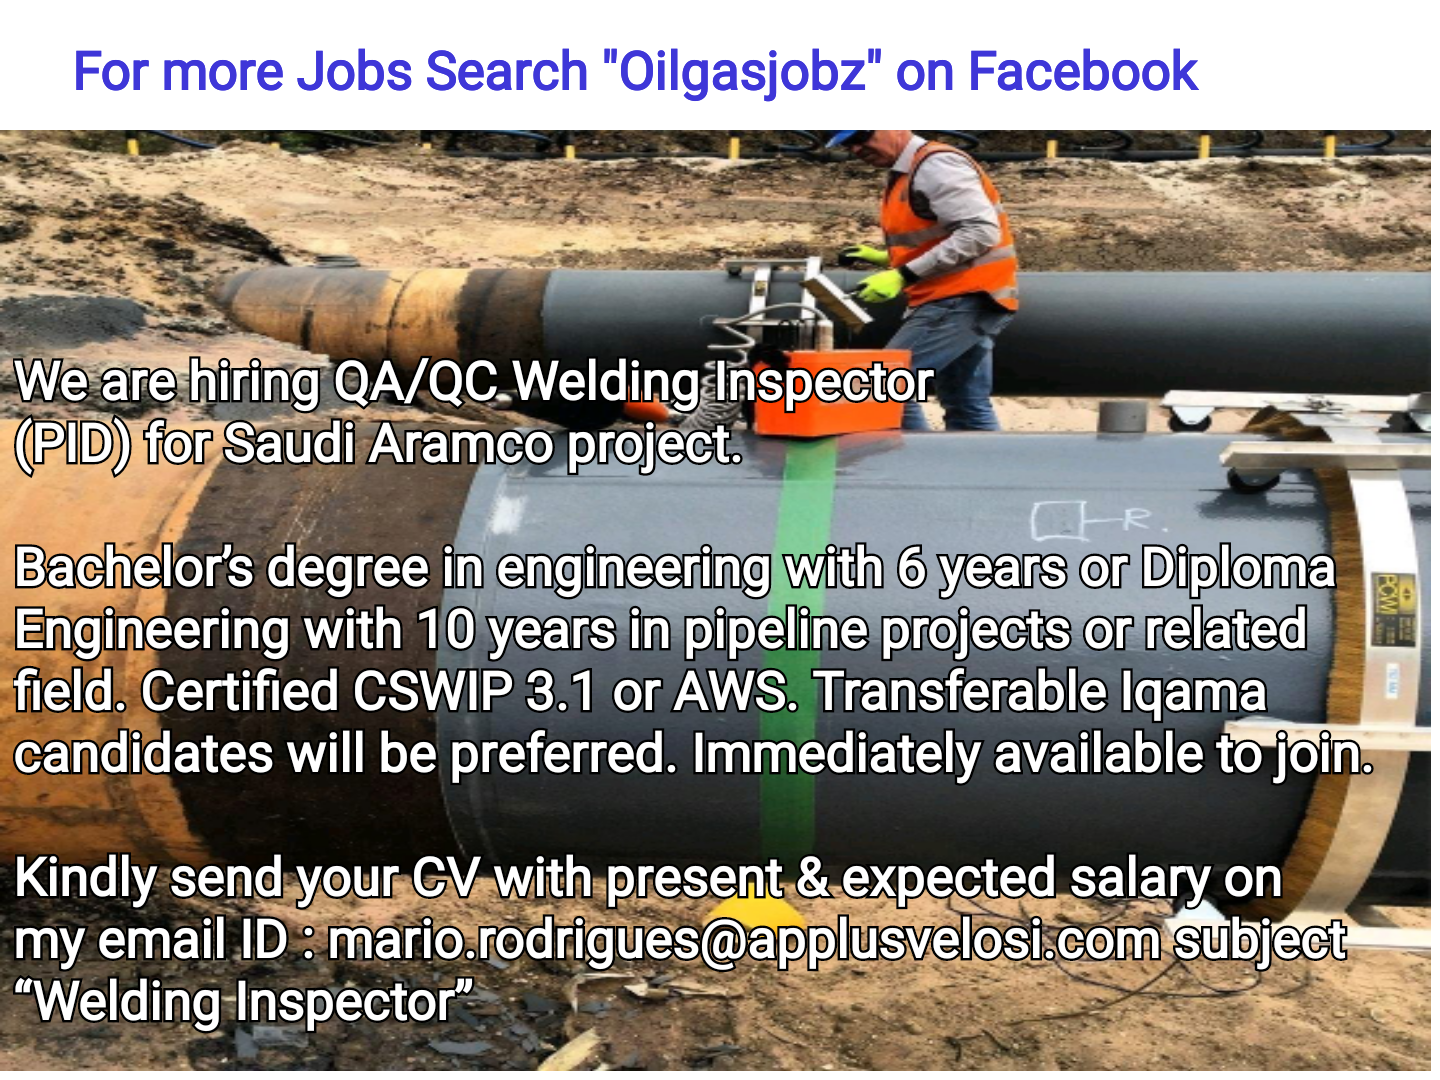 Oil and Gas Jobs: QA/QC Welding Inspector